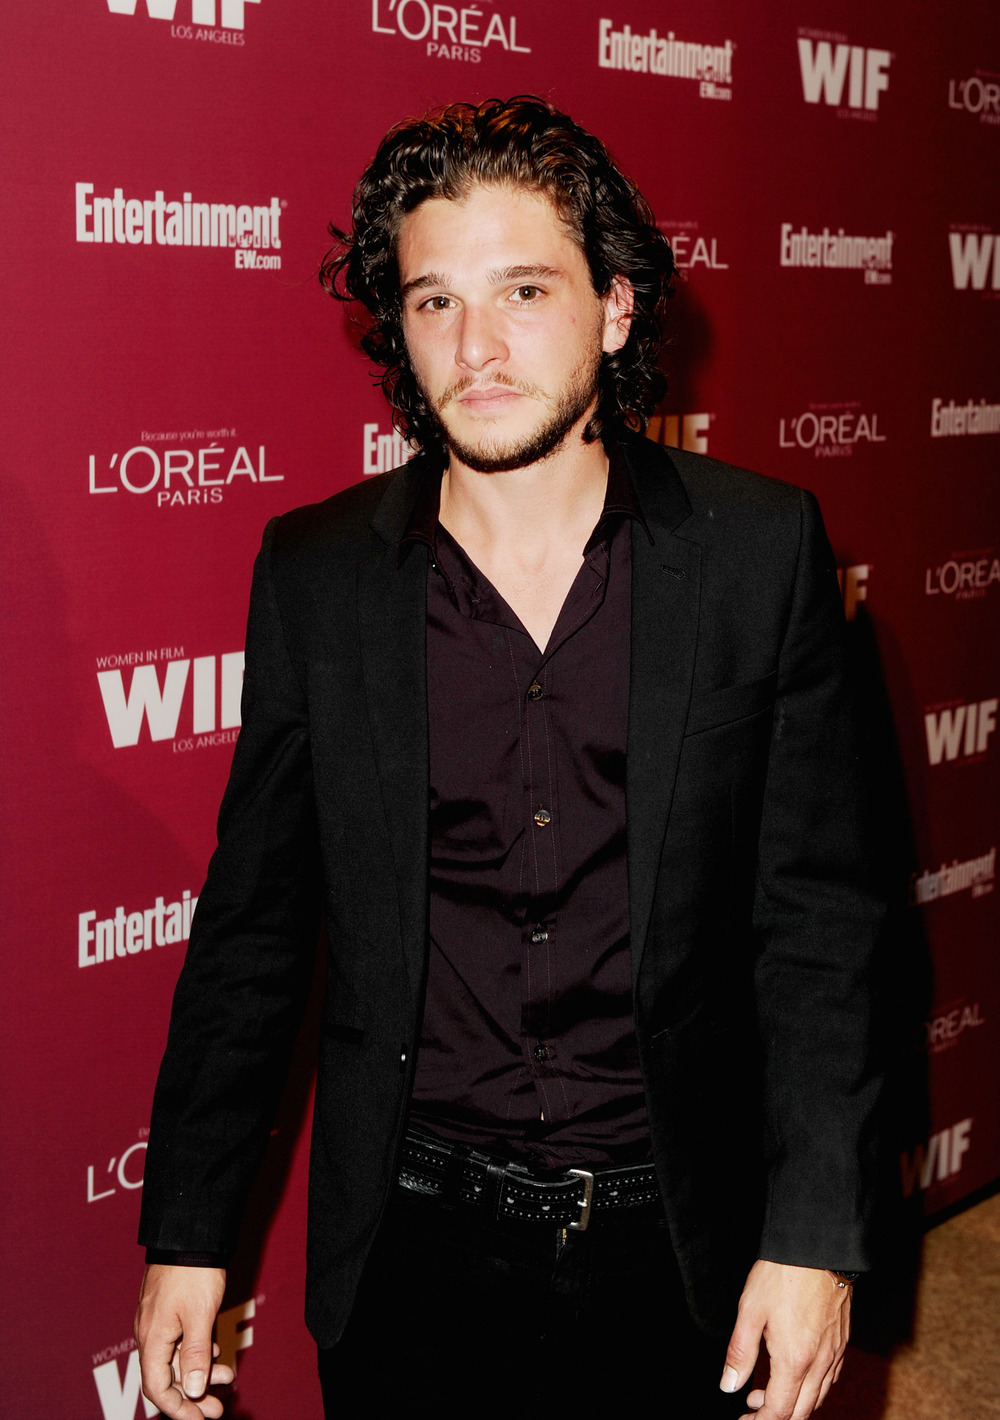 Kit Harington Takes Off the Black for Feature Film Role — HOLY ABS!